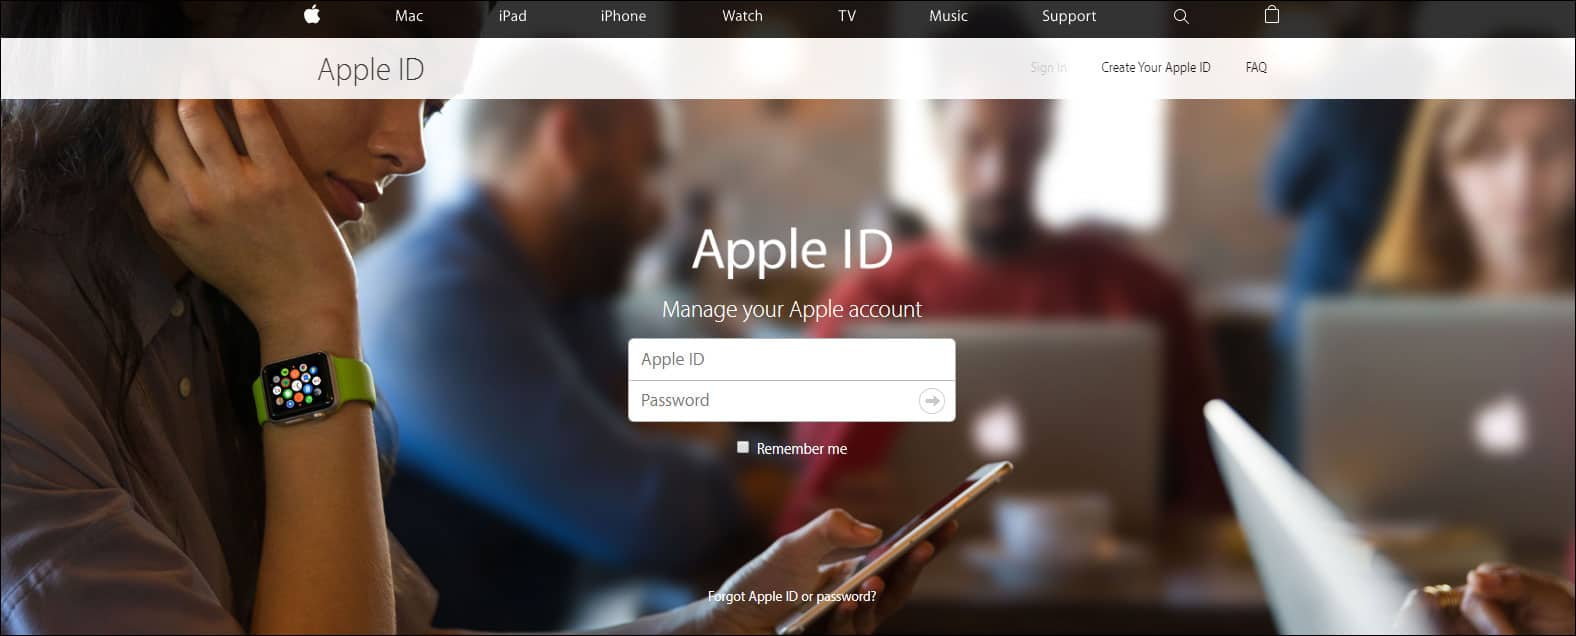 Open appleid type in Apple ID and Password